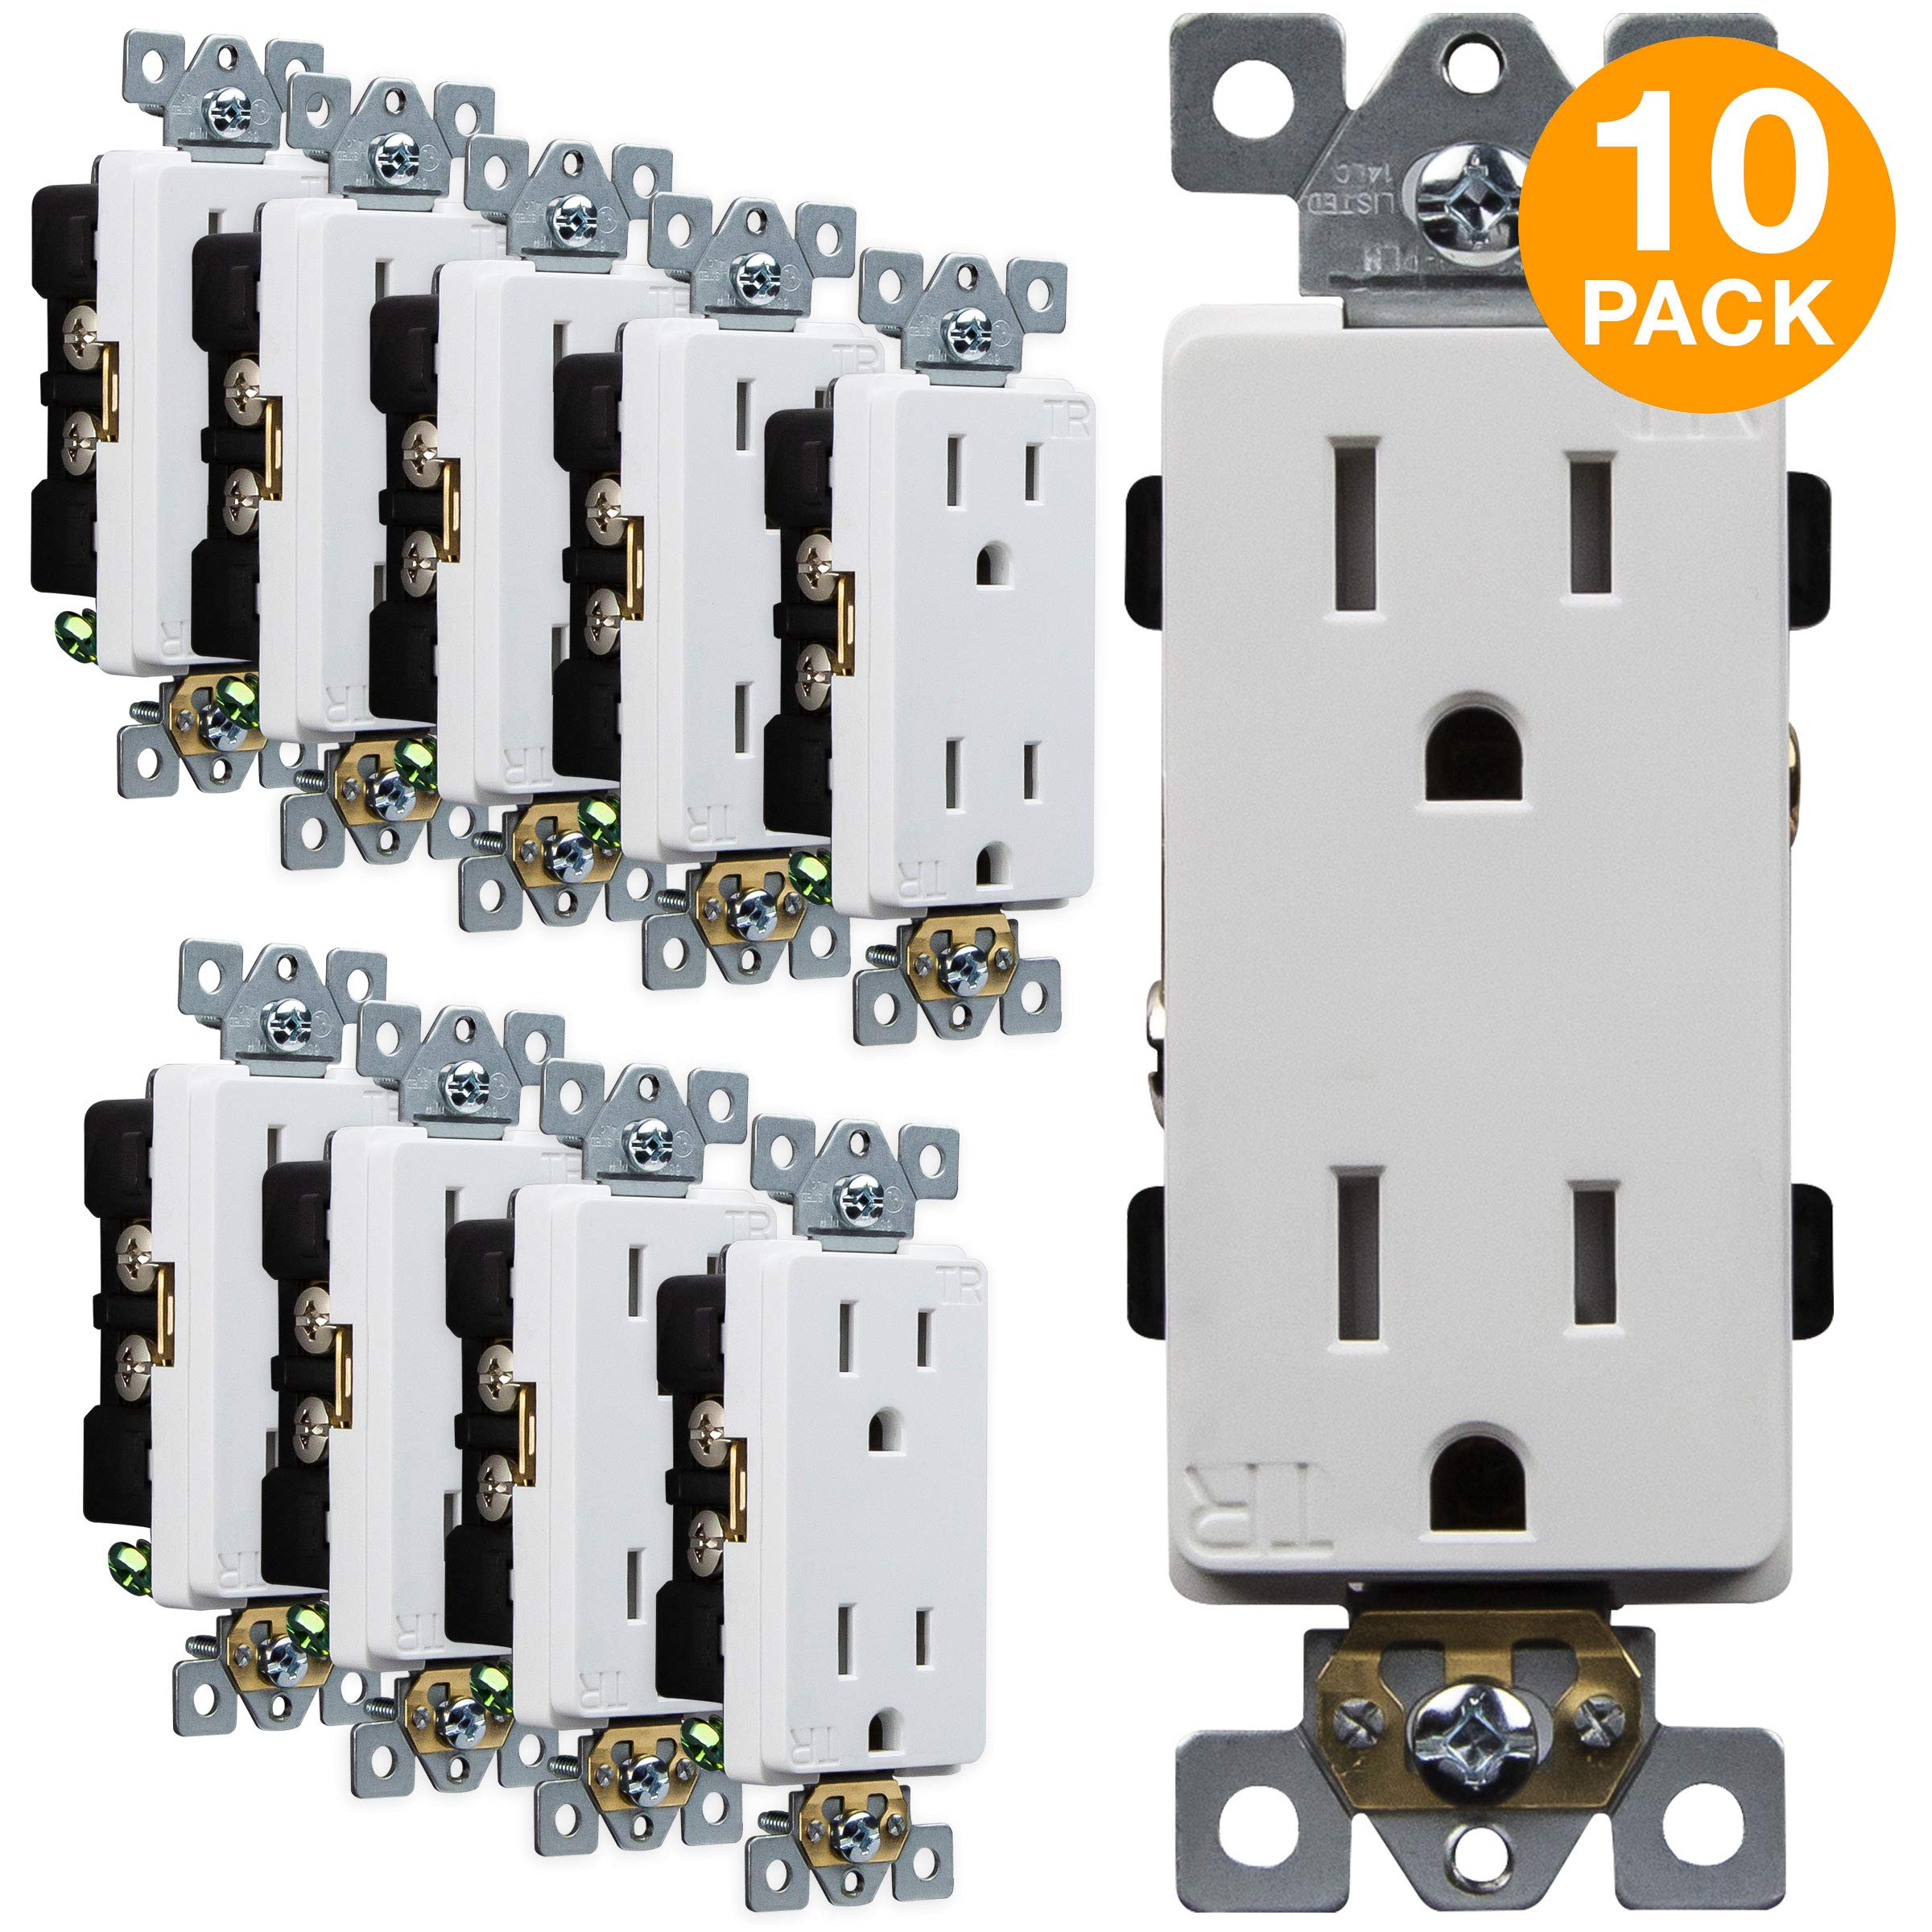 ENERLITES Decorator Receptacle Outlets, Tamper-Resistant Receptacle, Industrial Grade, 15A 125V, Self-Grounding, 2-Pole, 3-Wire, 5-15R, UL Listed, 63150-TR, White (10 Pack)